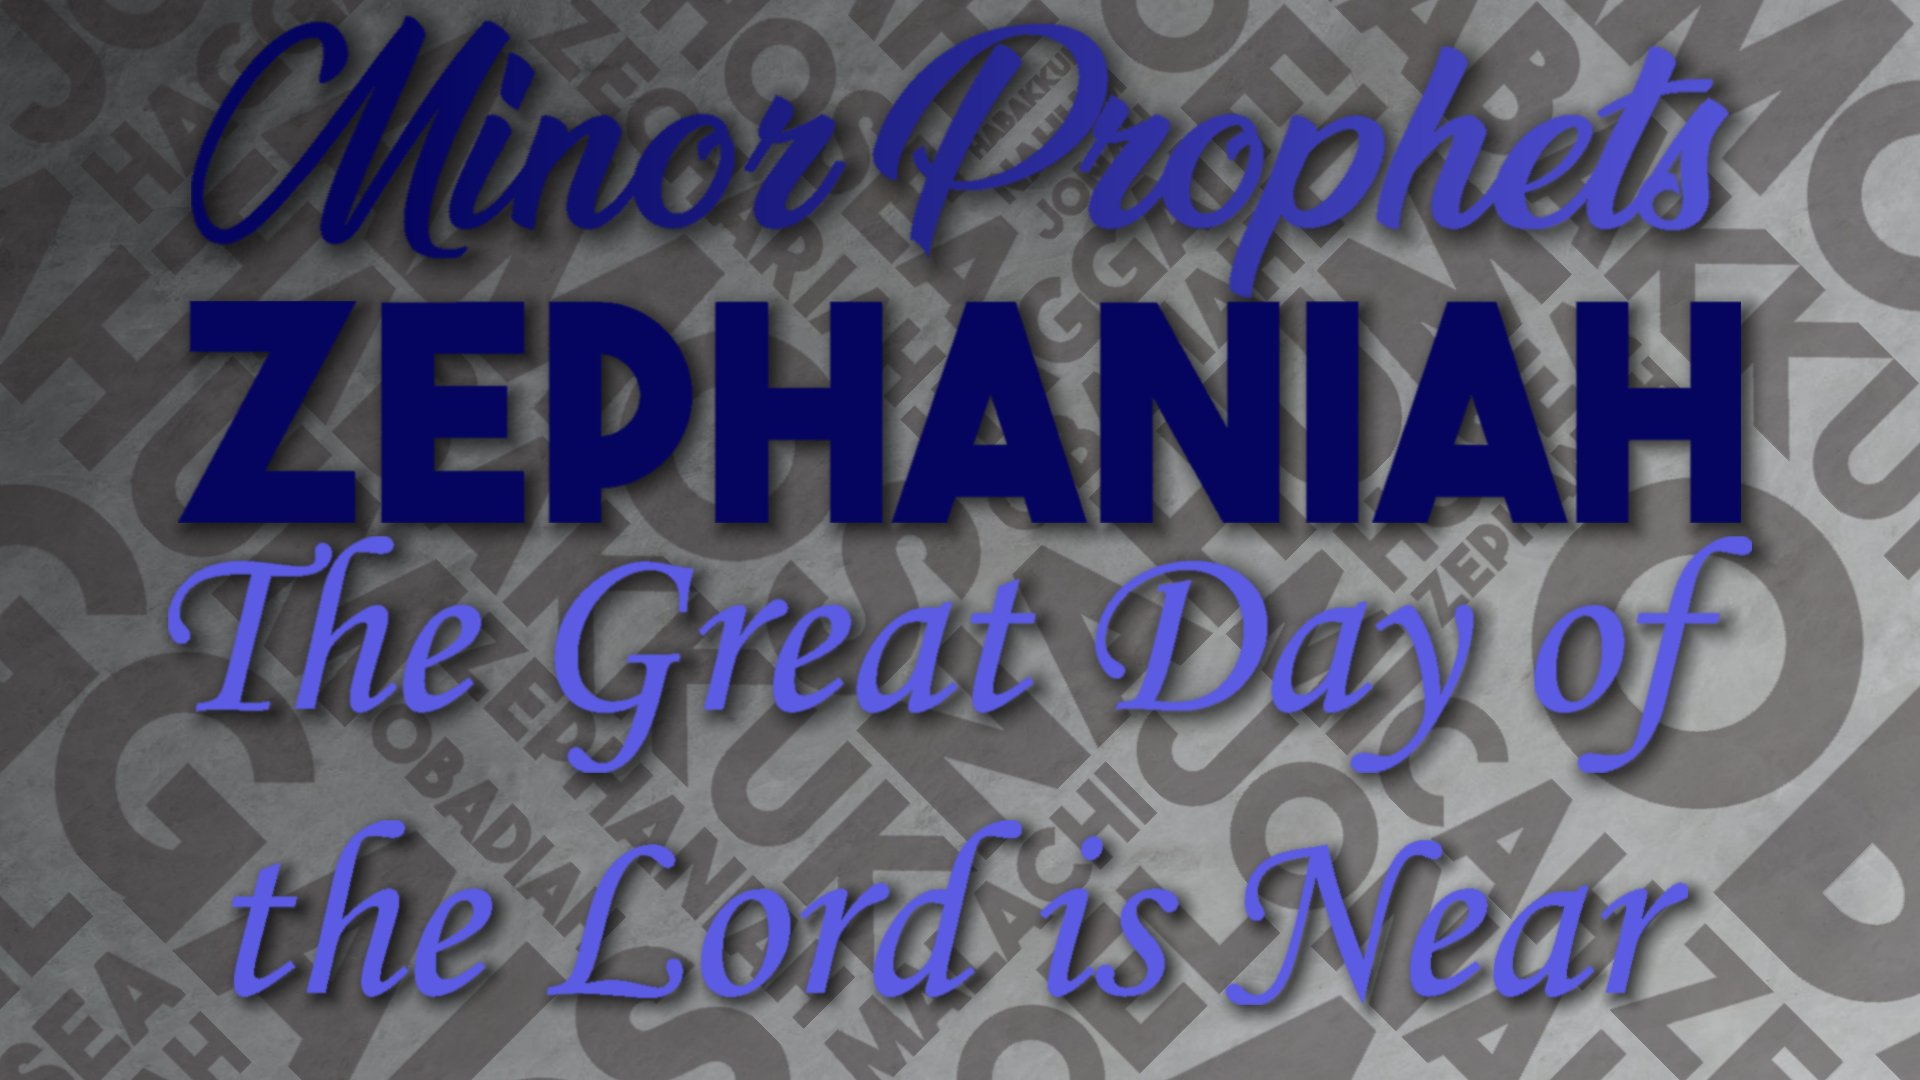 25 The Great Day of the Lord is Near